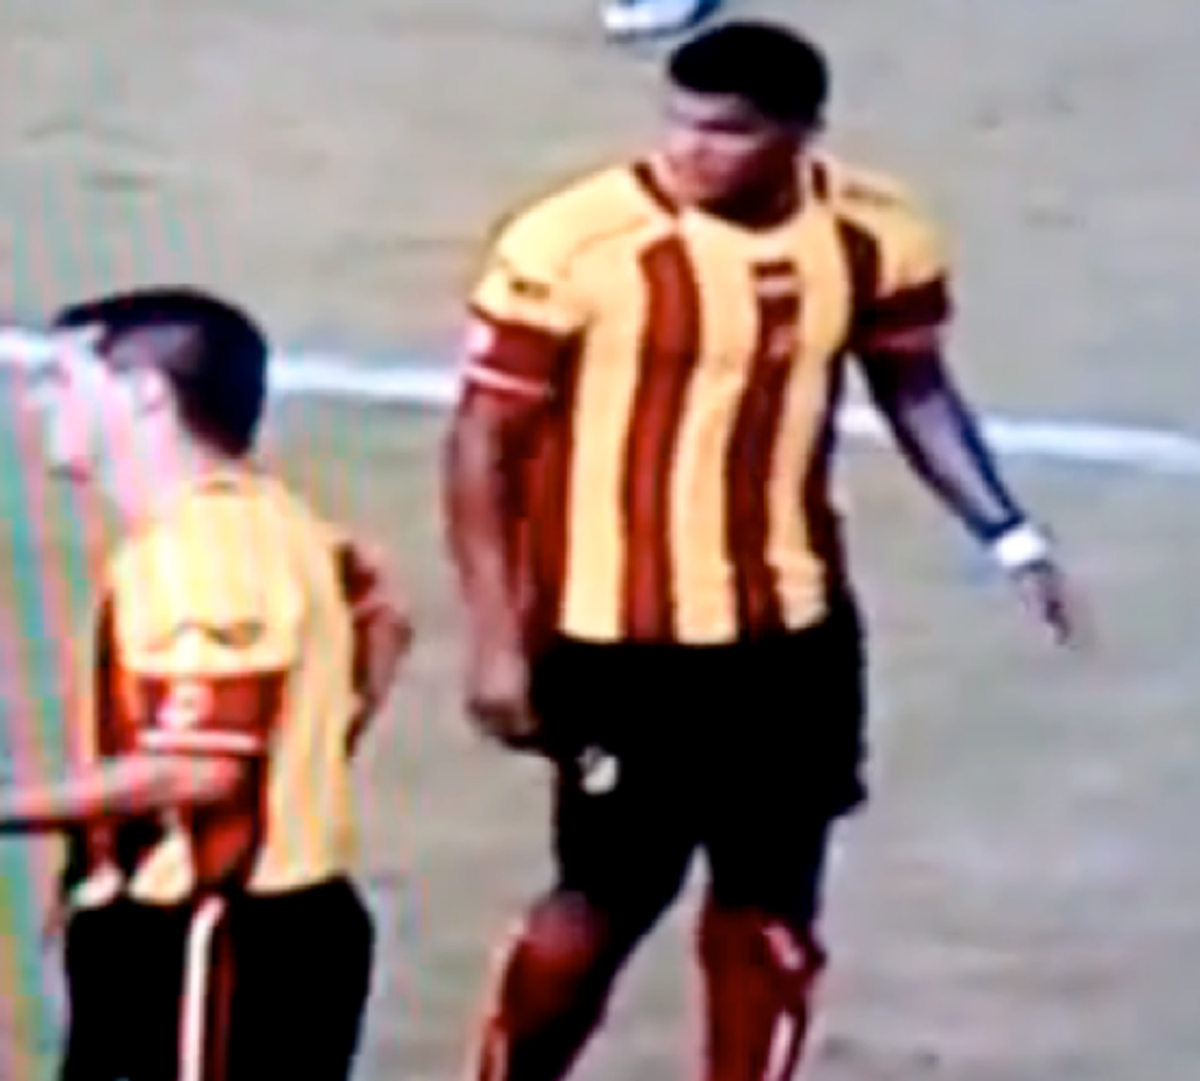 Luis Moreno continues the game after kicking an owl, the mascot and lucky charm of the opposing team, off the field